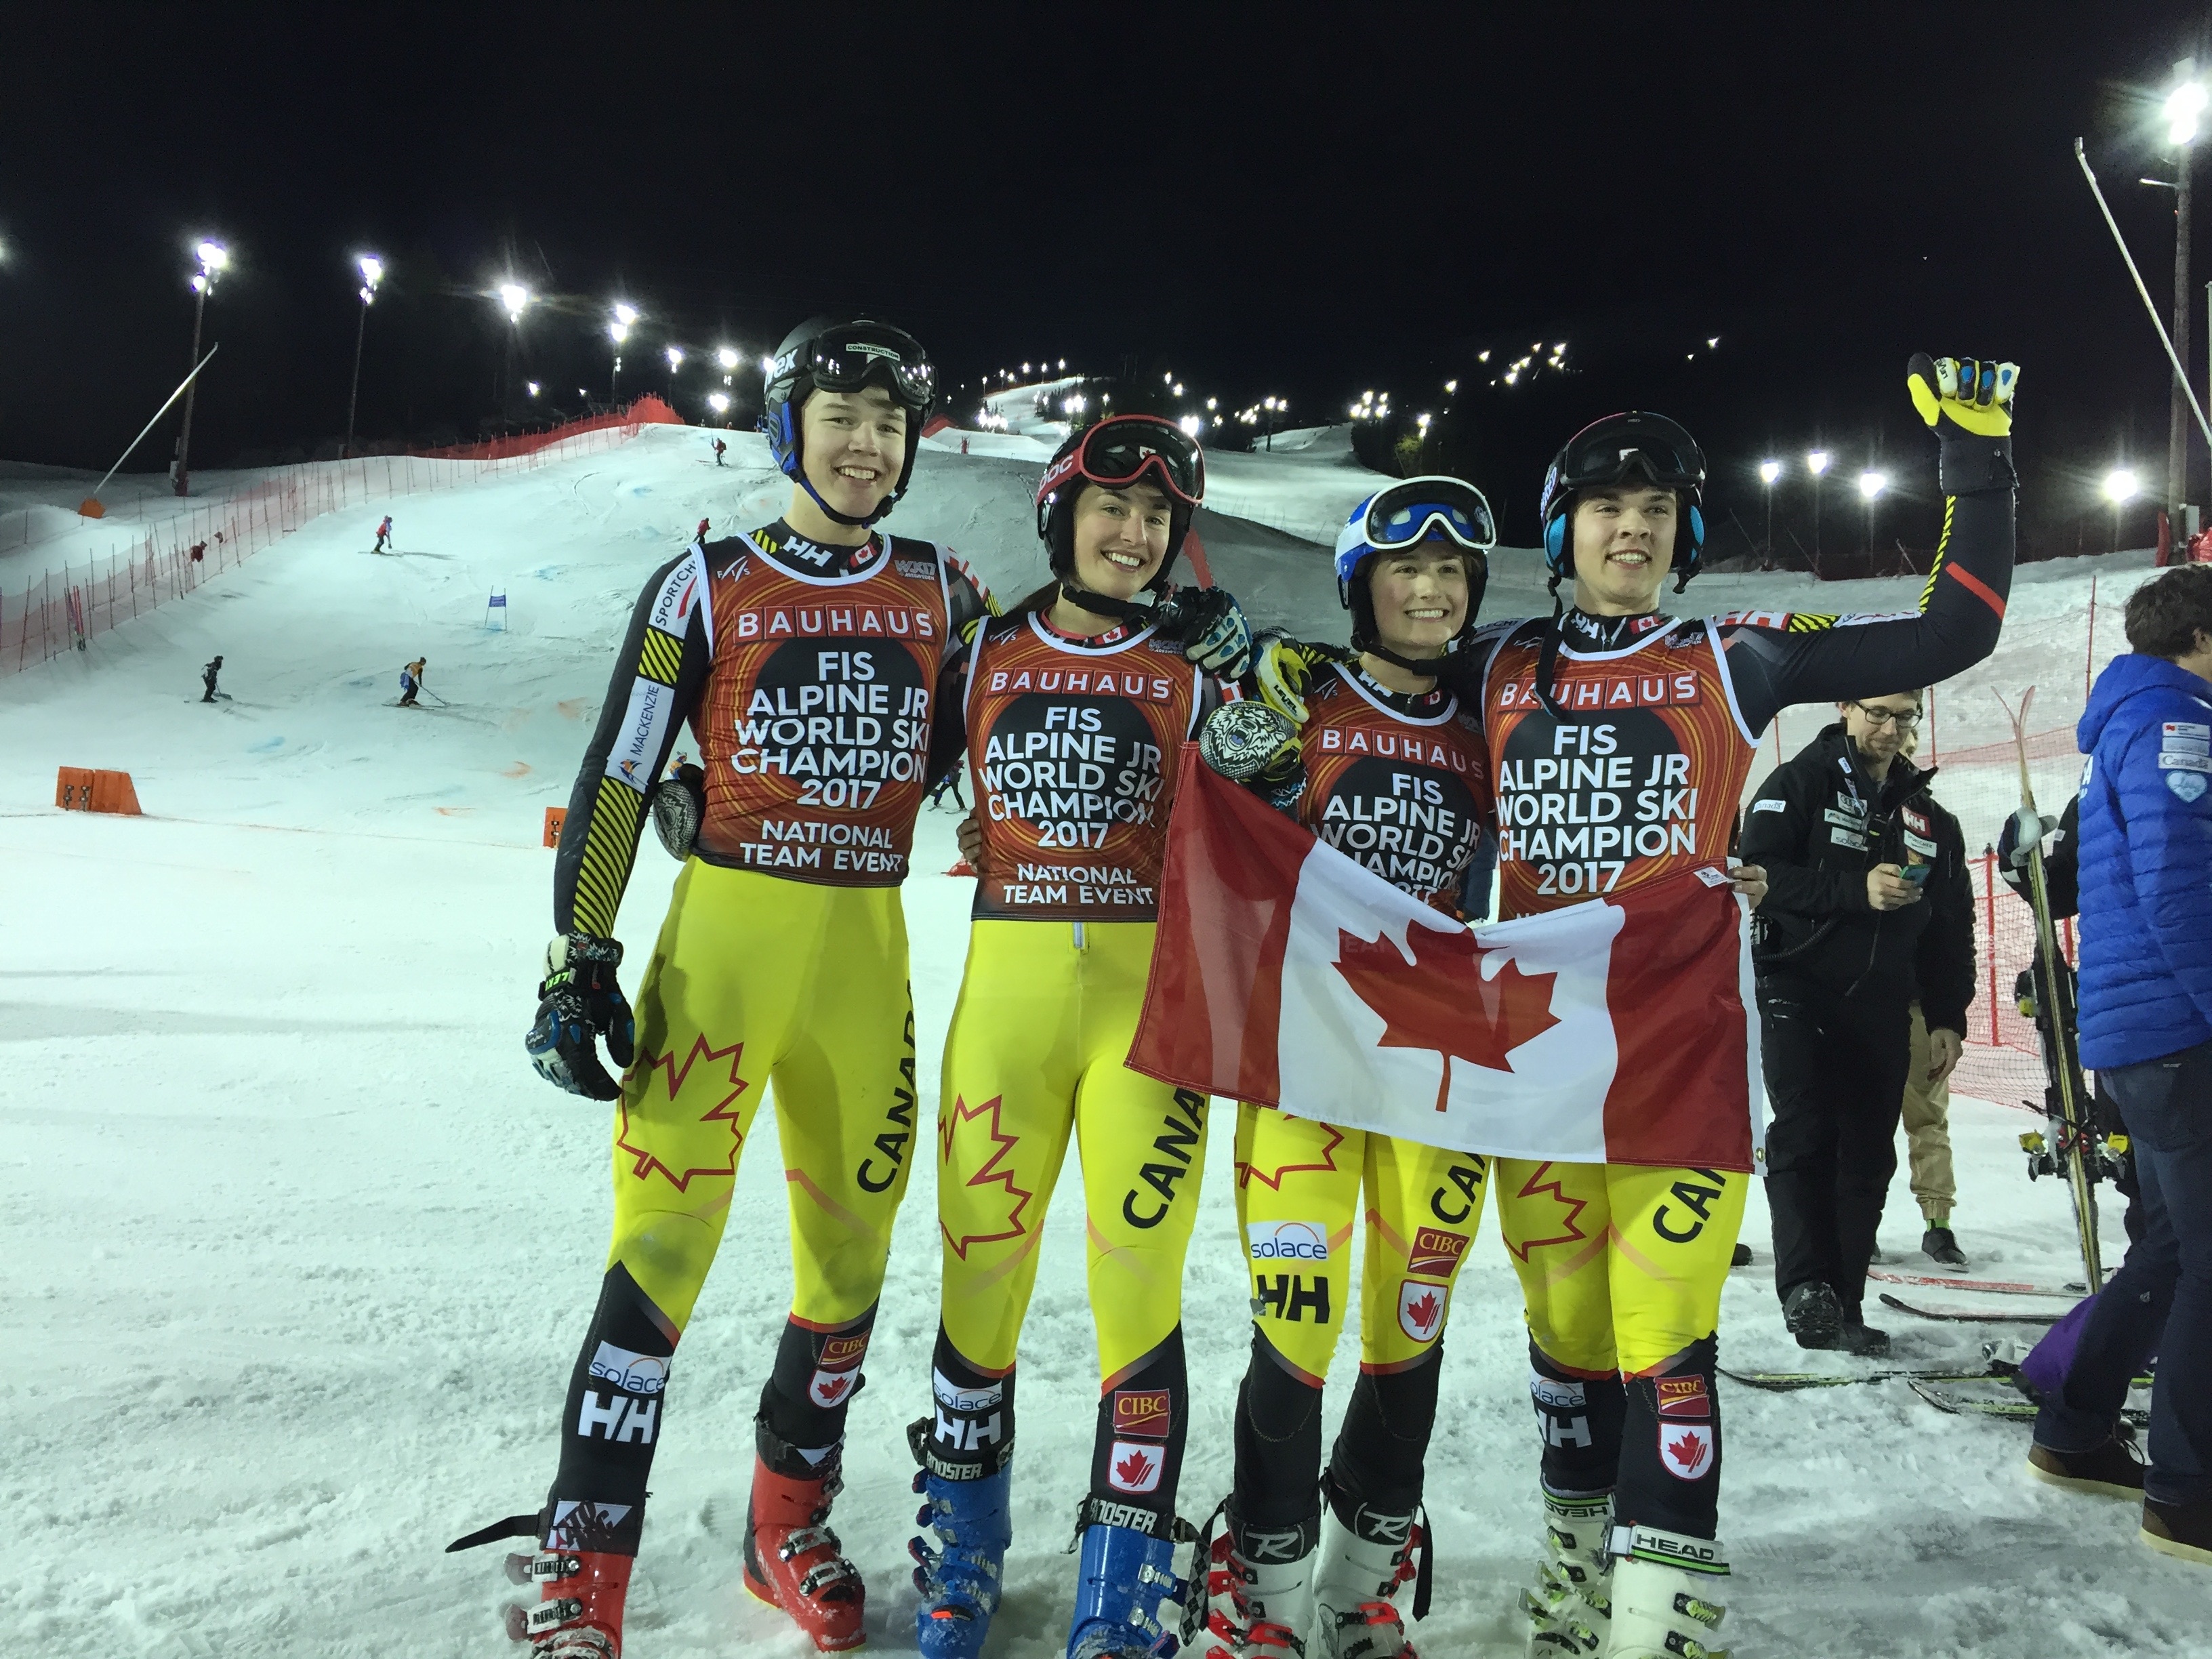 The team after winning Gold in the T